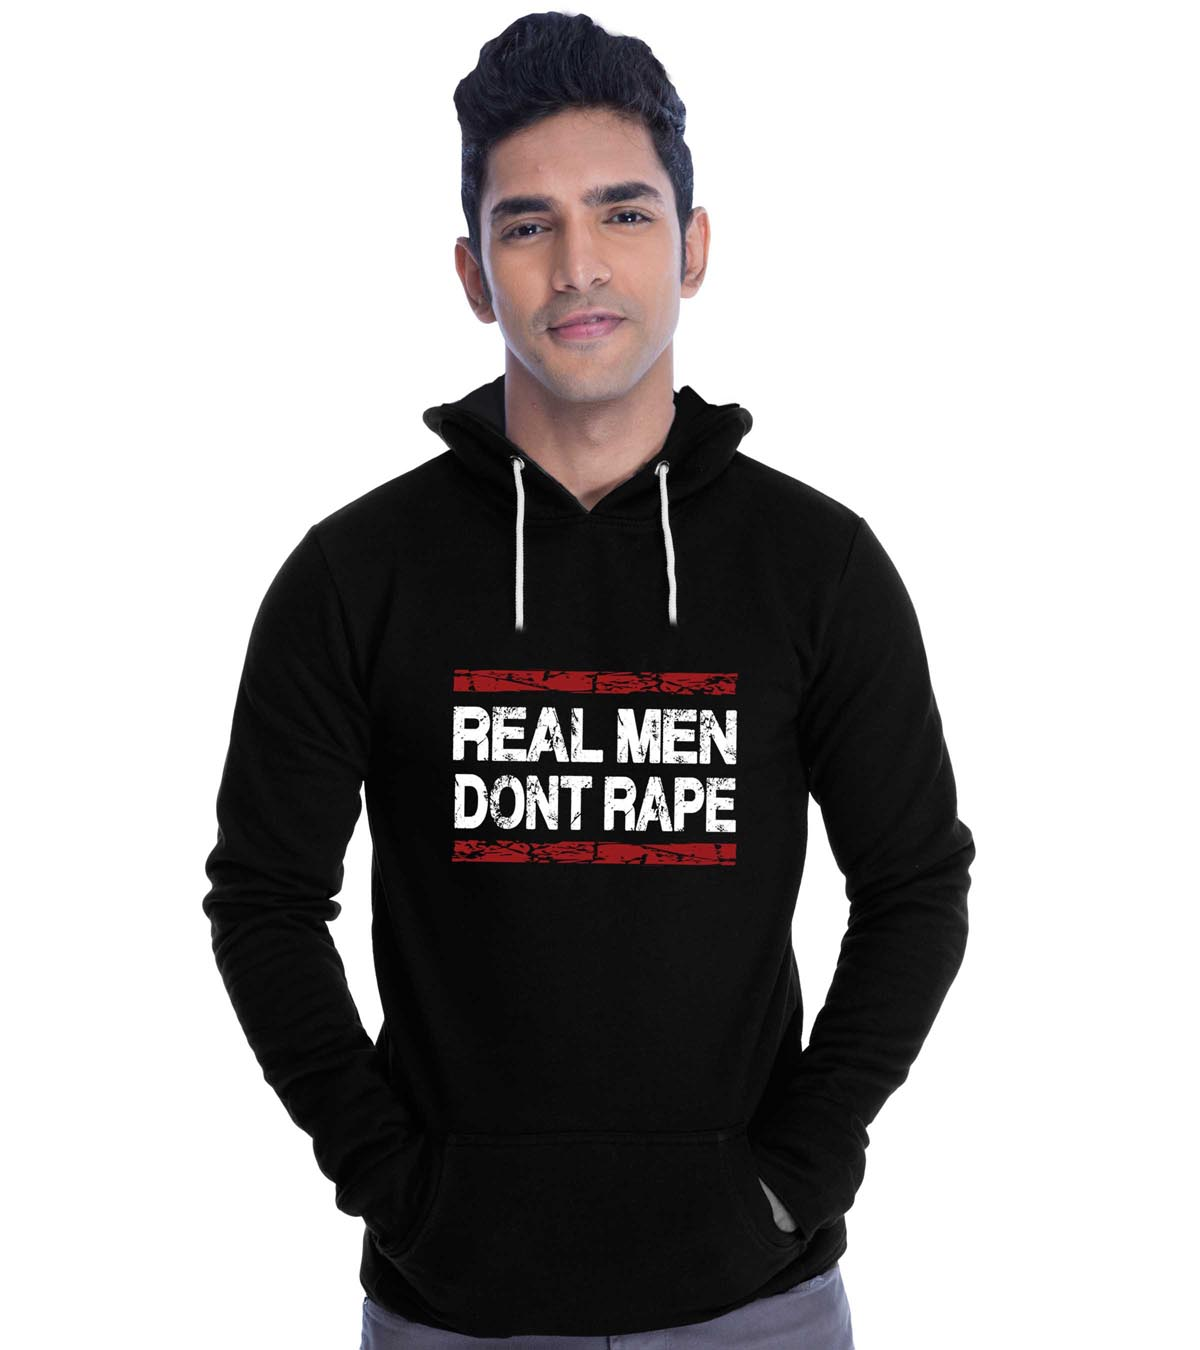 Real Men Don't Rape Hoodies